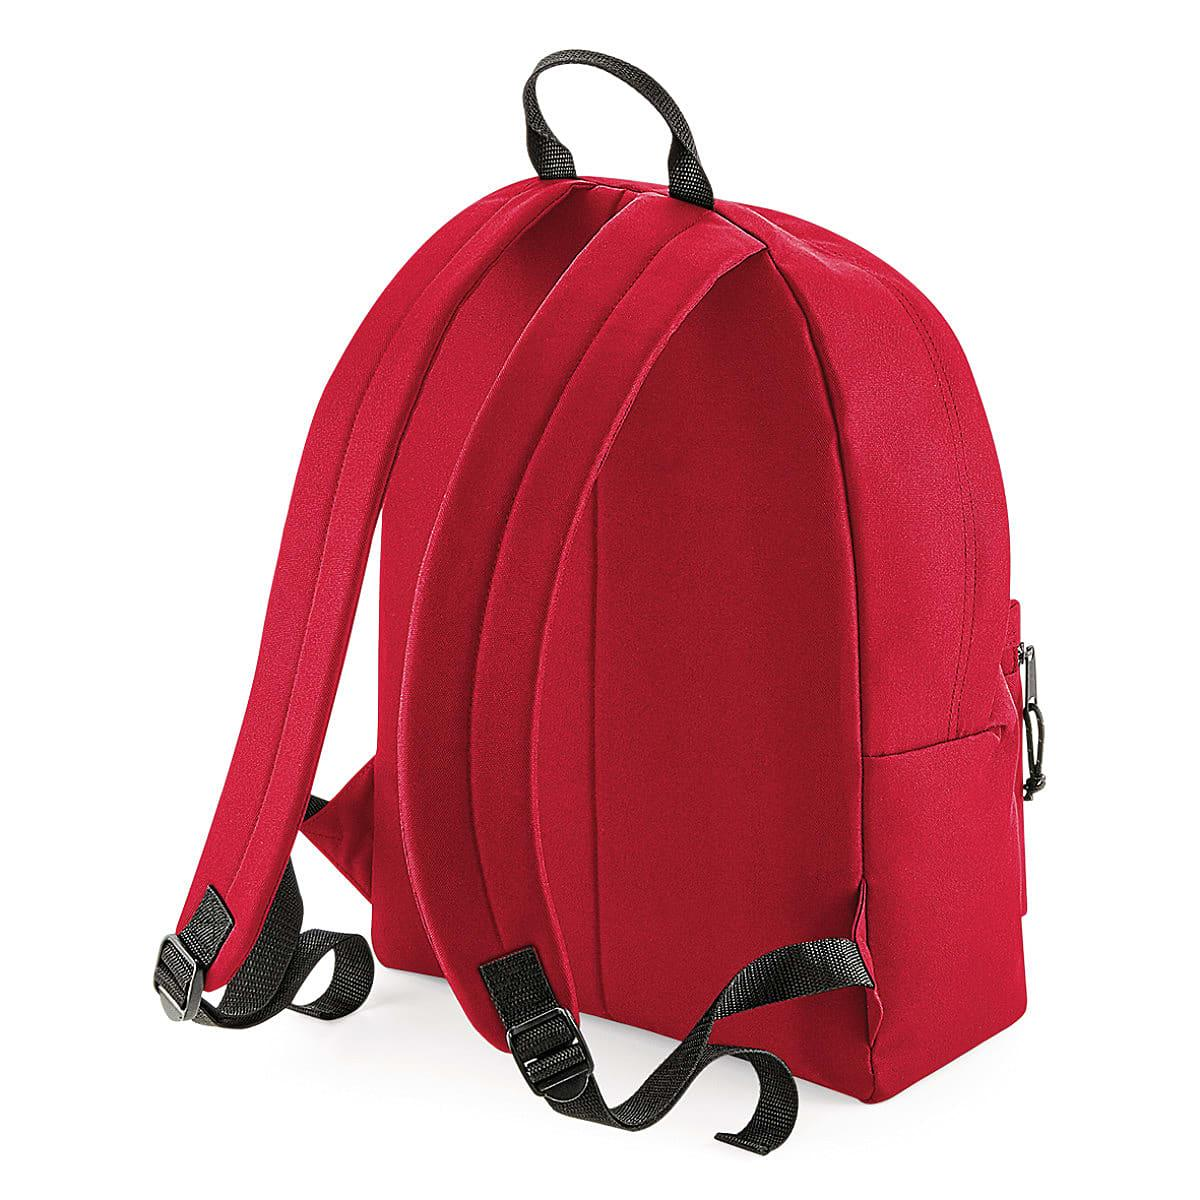 Bagbase Recycled Backpack in Classic Red (Product Code: BG285)